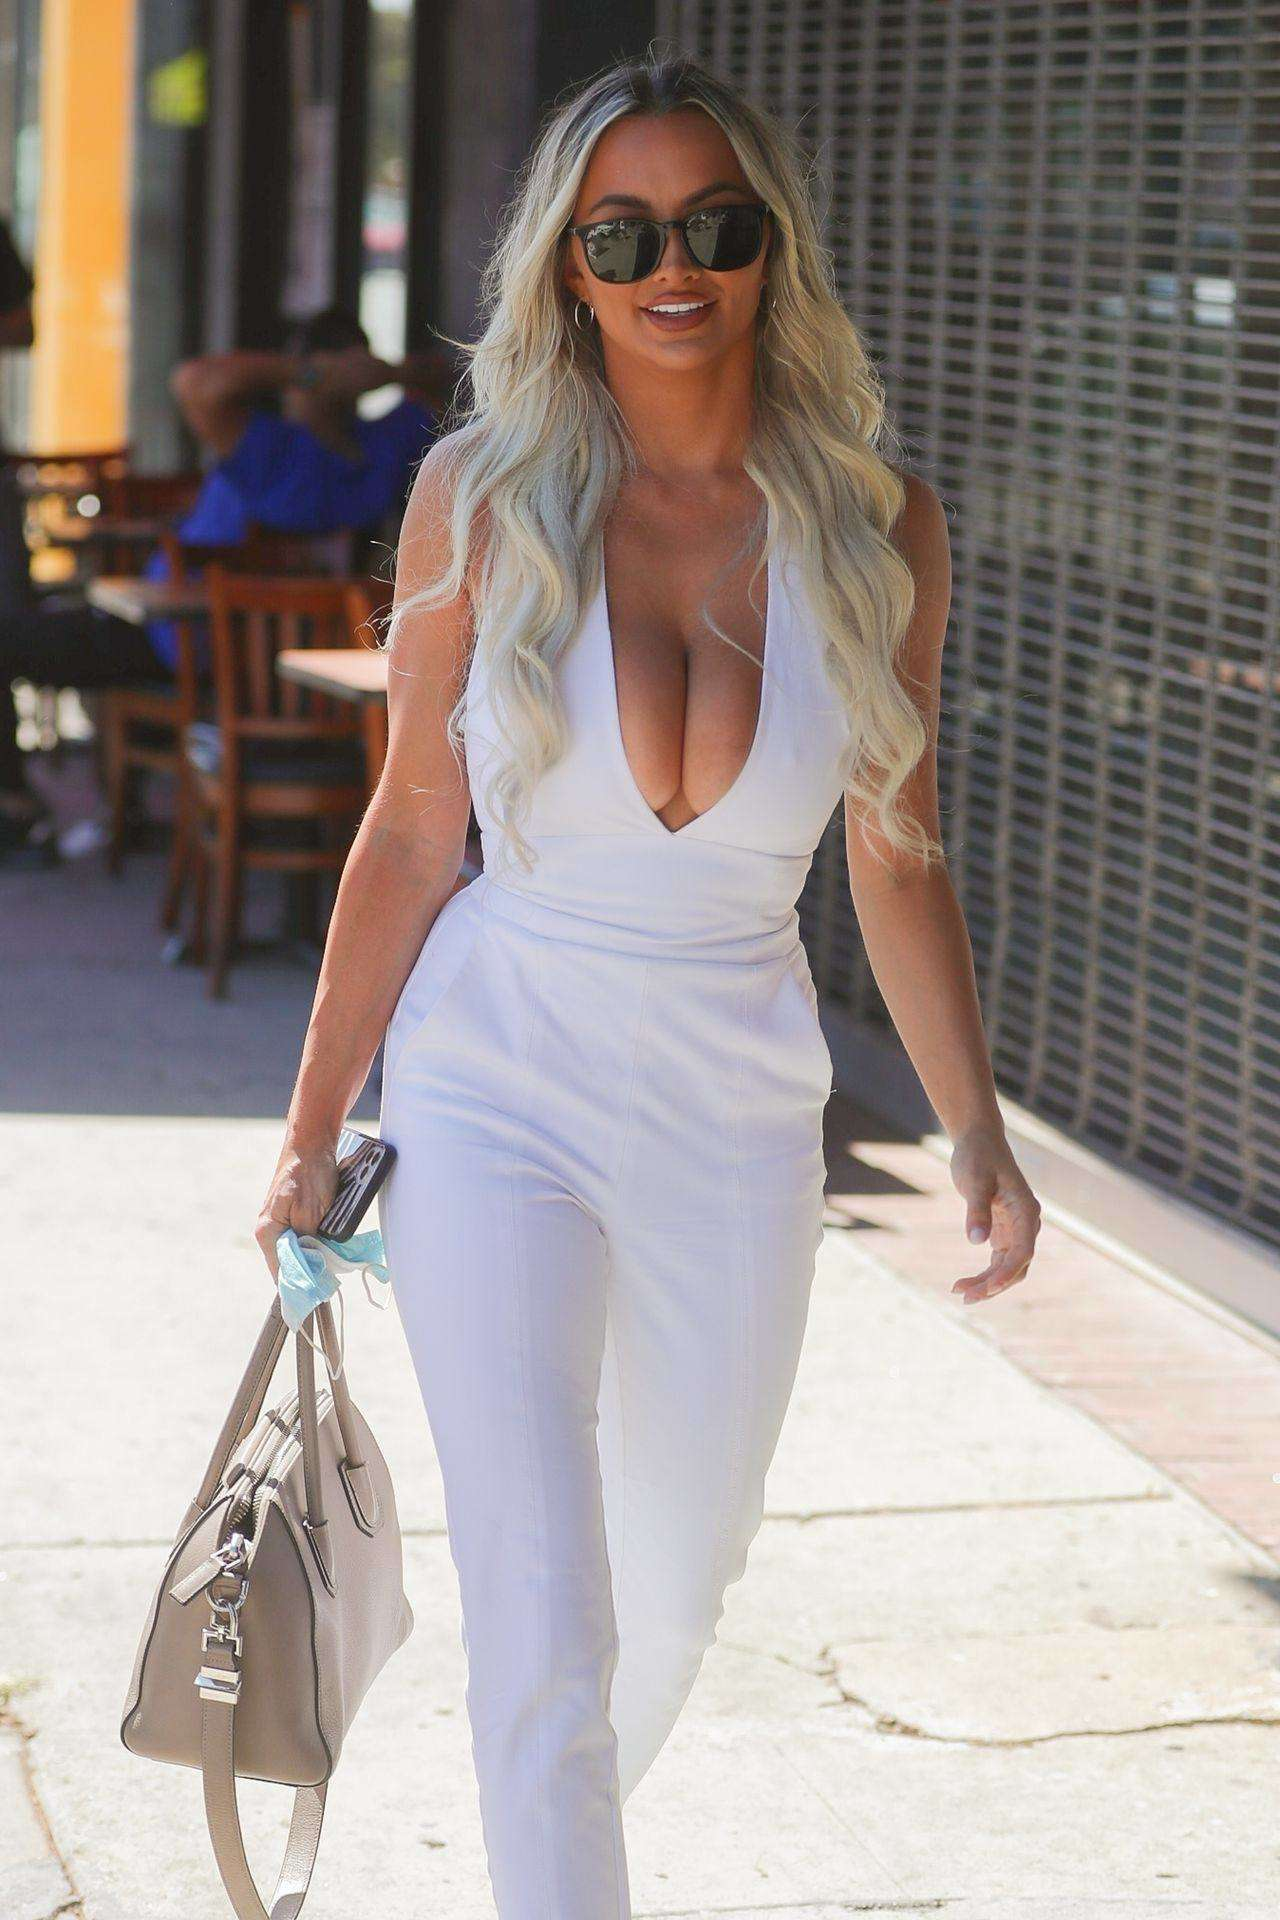 Lindsey Pelas Cleavage, Out in White Suit in Los Angeles